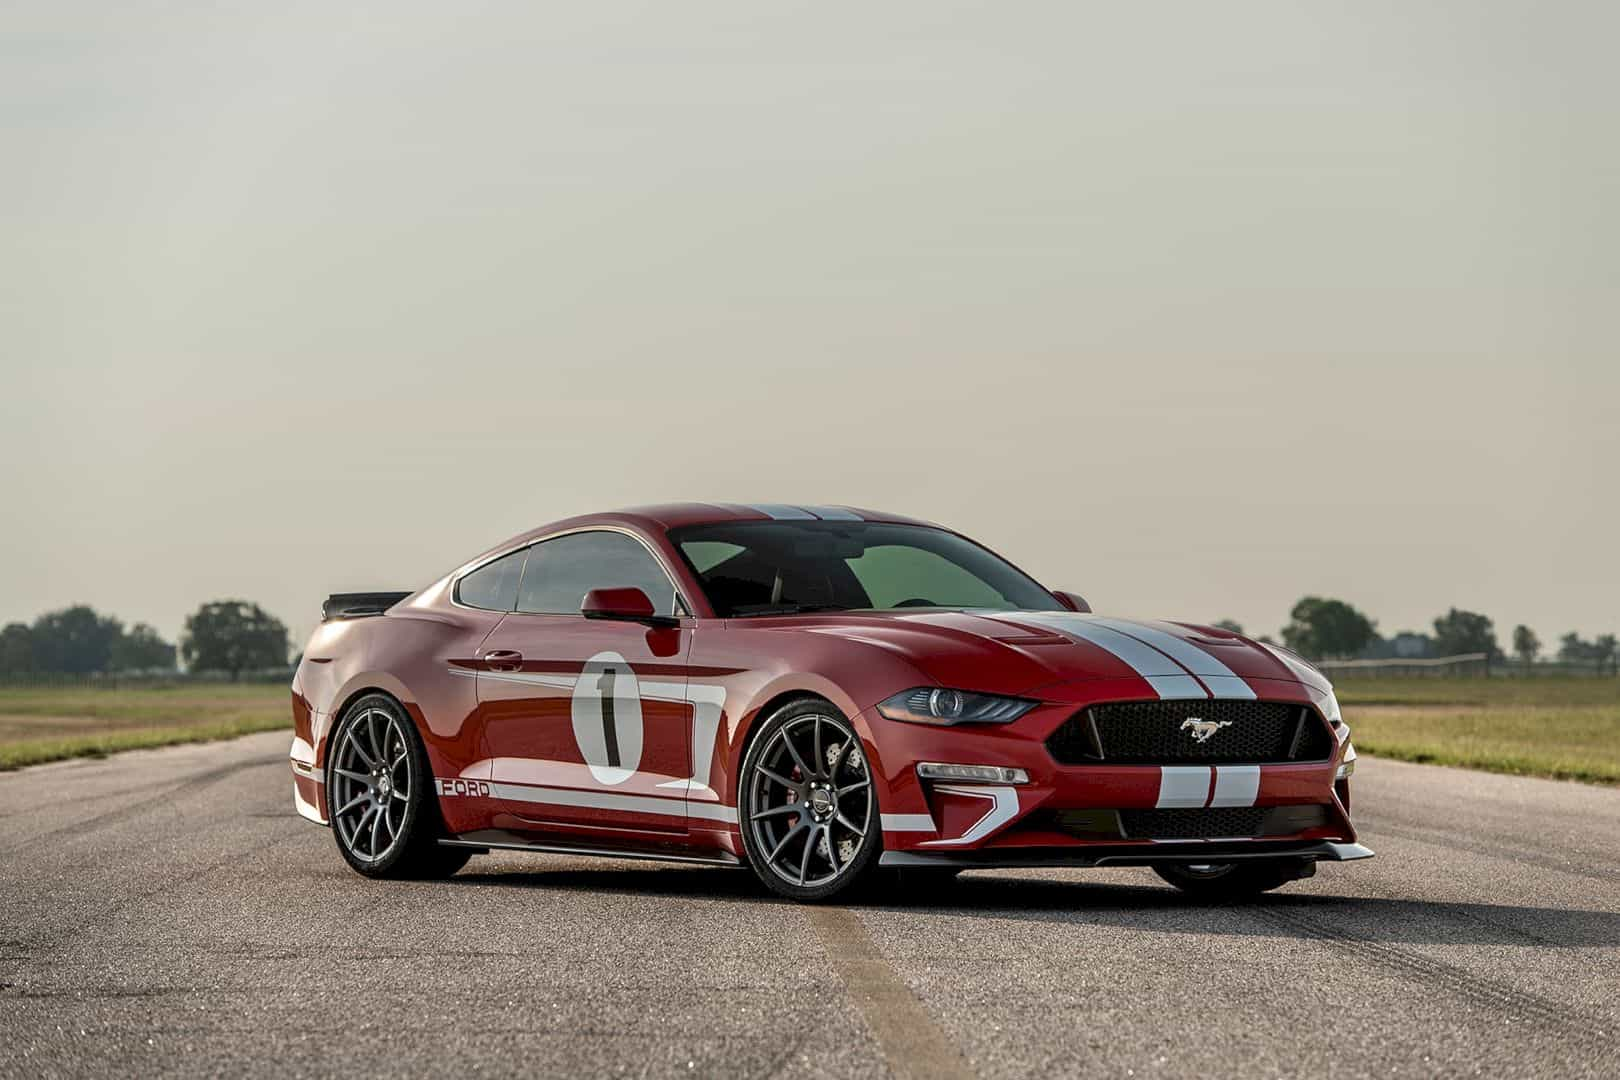 Hennessey Heritage Edition Mustang: Feel The Power